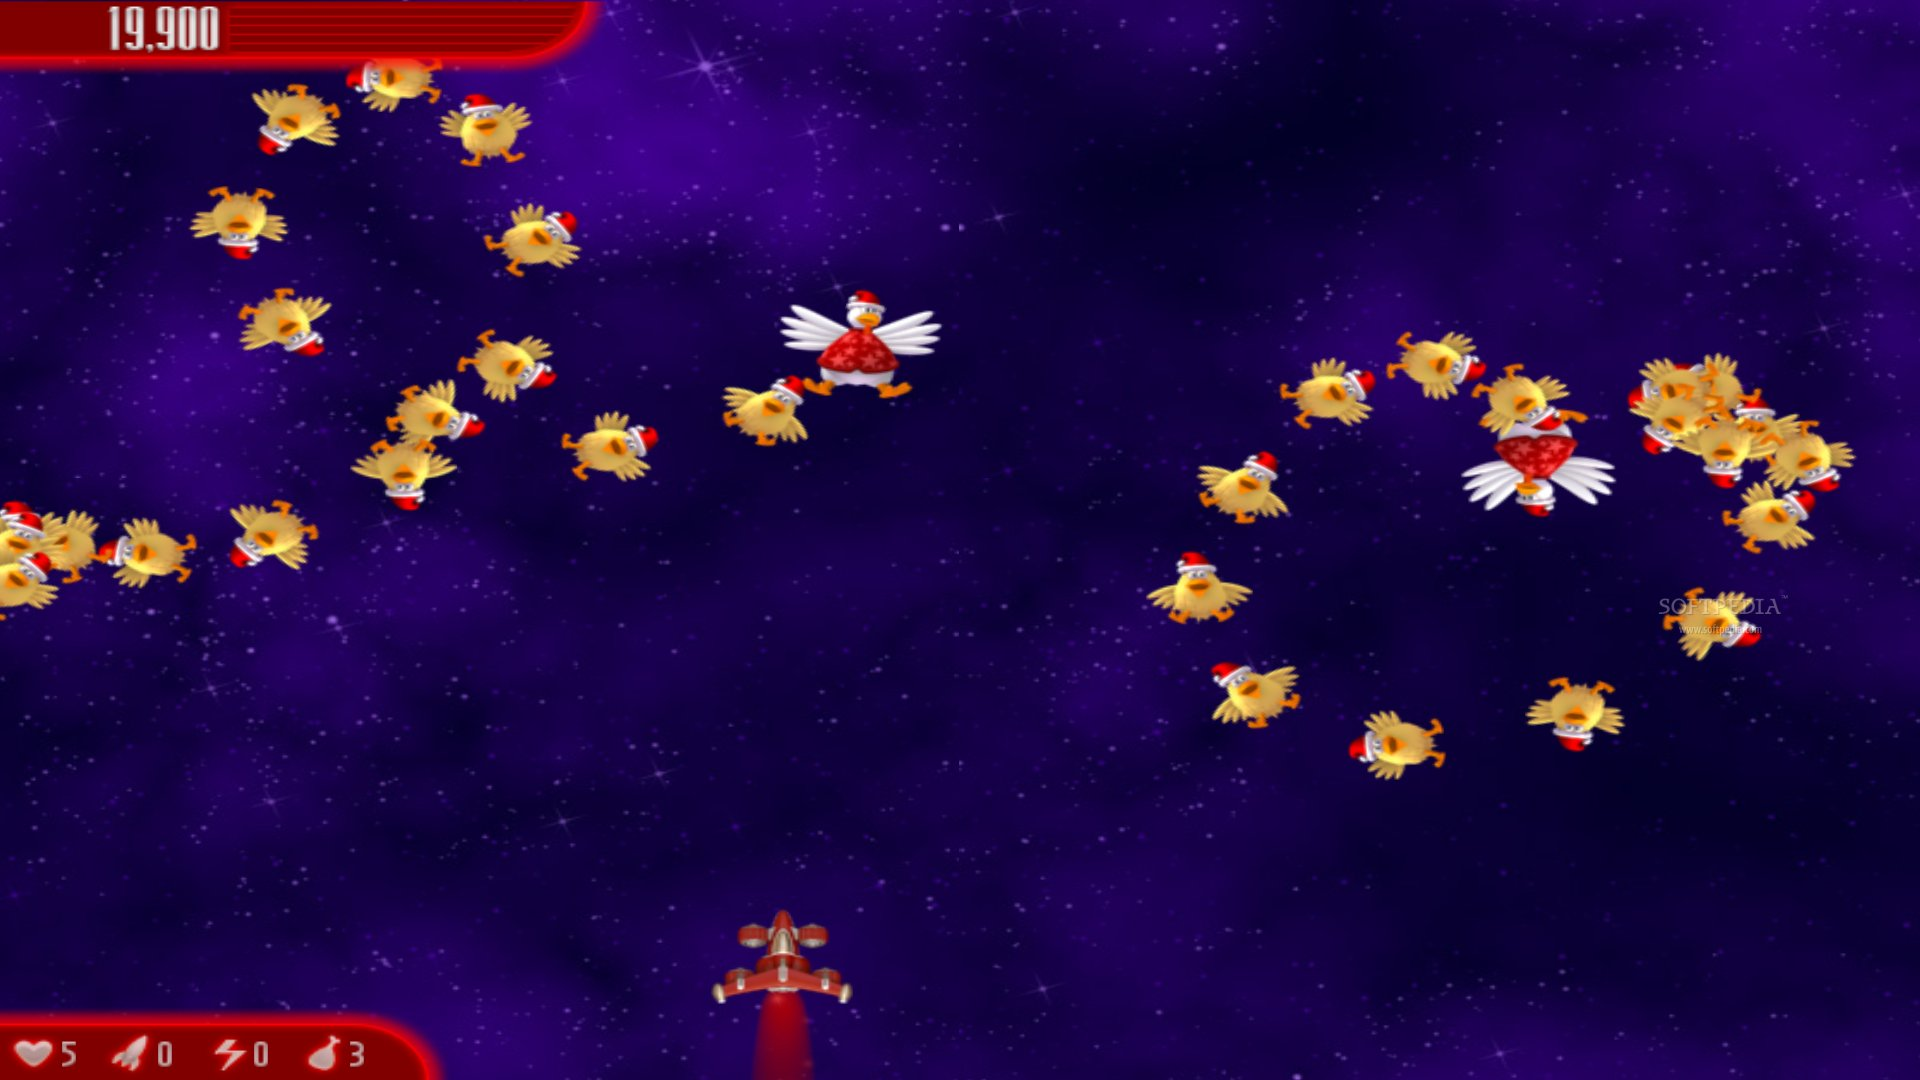 chicken invaders 4 free download for windows xp